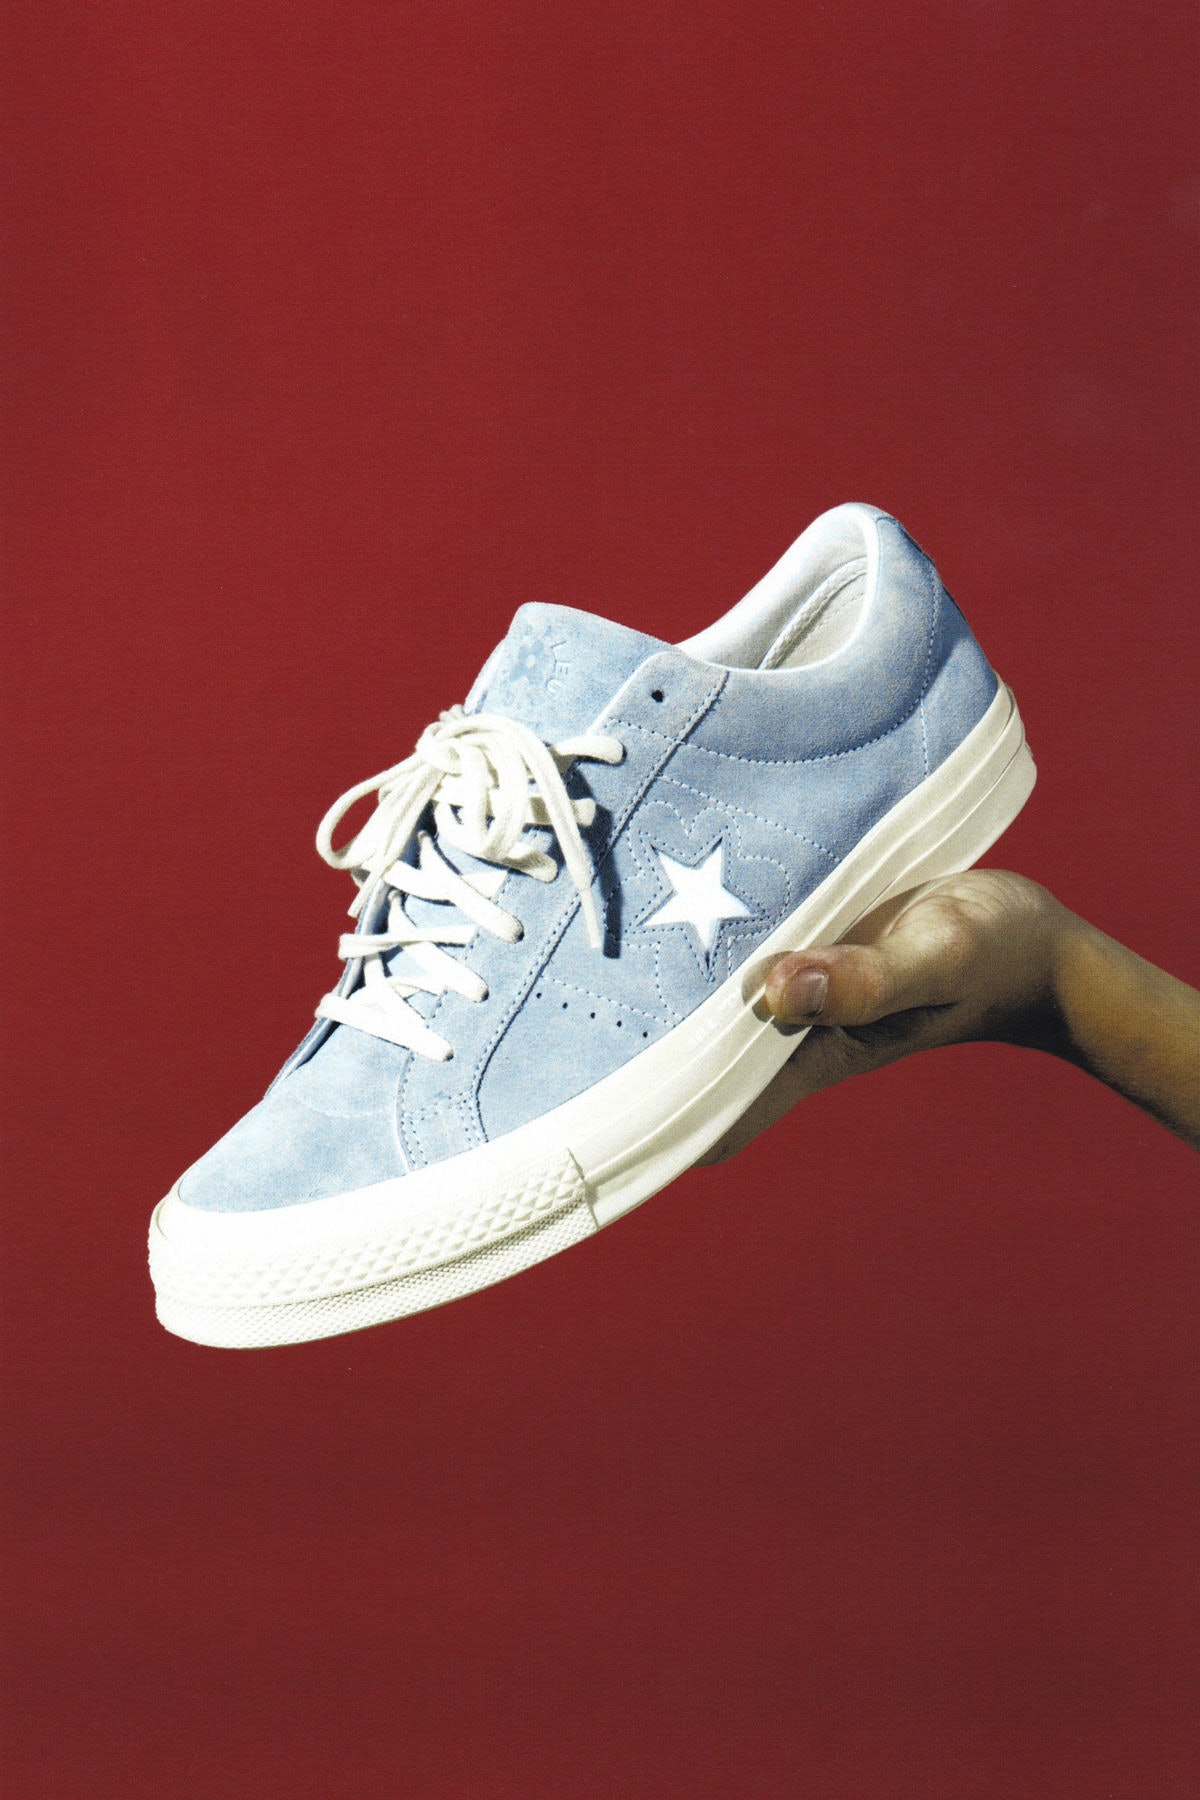 a9970cb18370 New GOLF le FLEUR  x Converse Sneakers Are On The Way   They re Made Of  Burlap